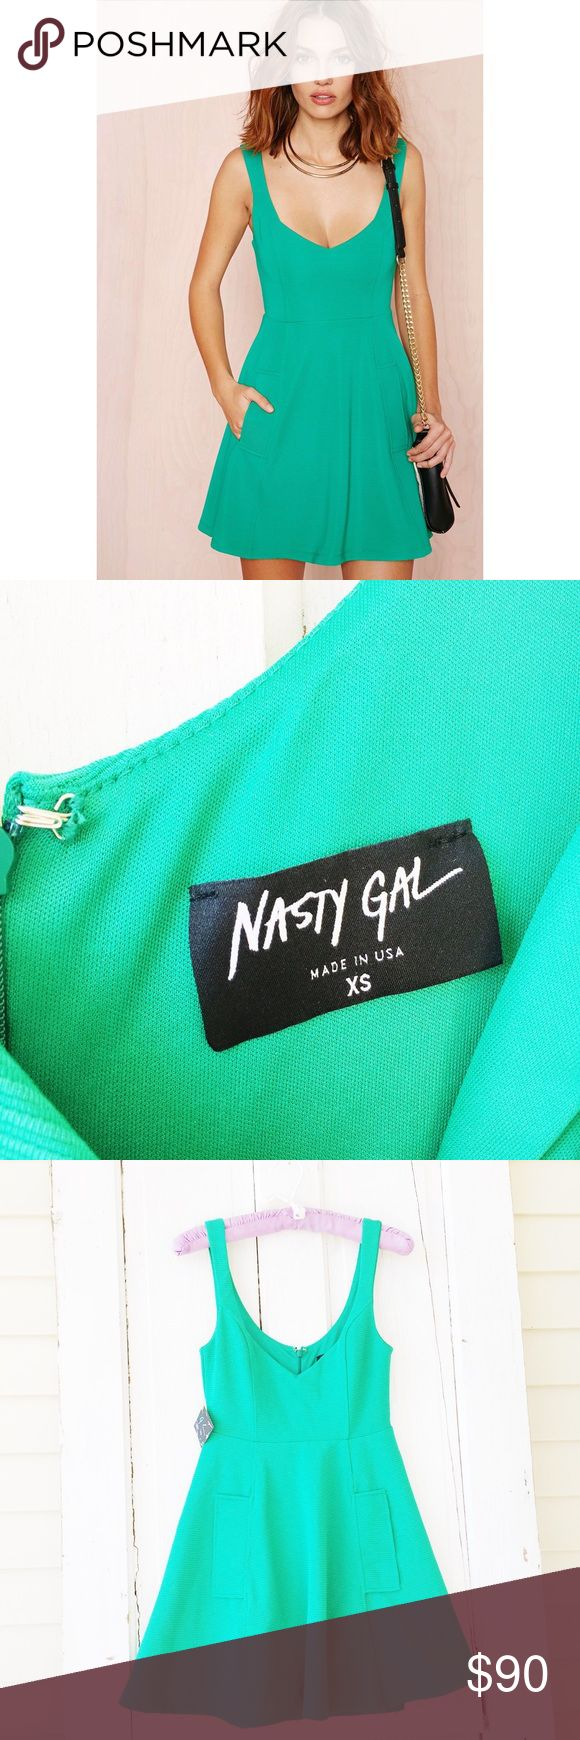 Nast Gal Skater Dress ★ Excellent Condition  ★ Reasonable Offers Accepted  ★ Measurements Available Upon Request ★ 95% polyester, 5% spandex  ★ NO TRADES ★ NO MODELING  (halg469) Nasty Gal Dresses Mini